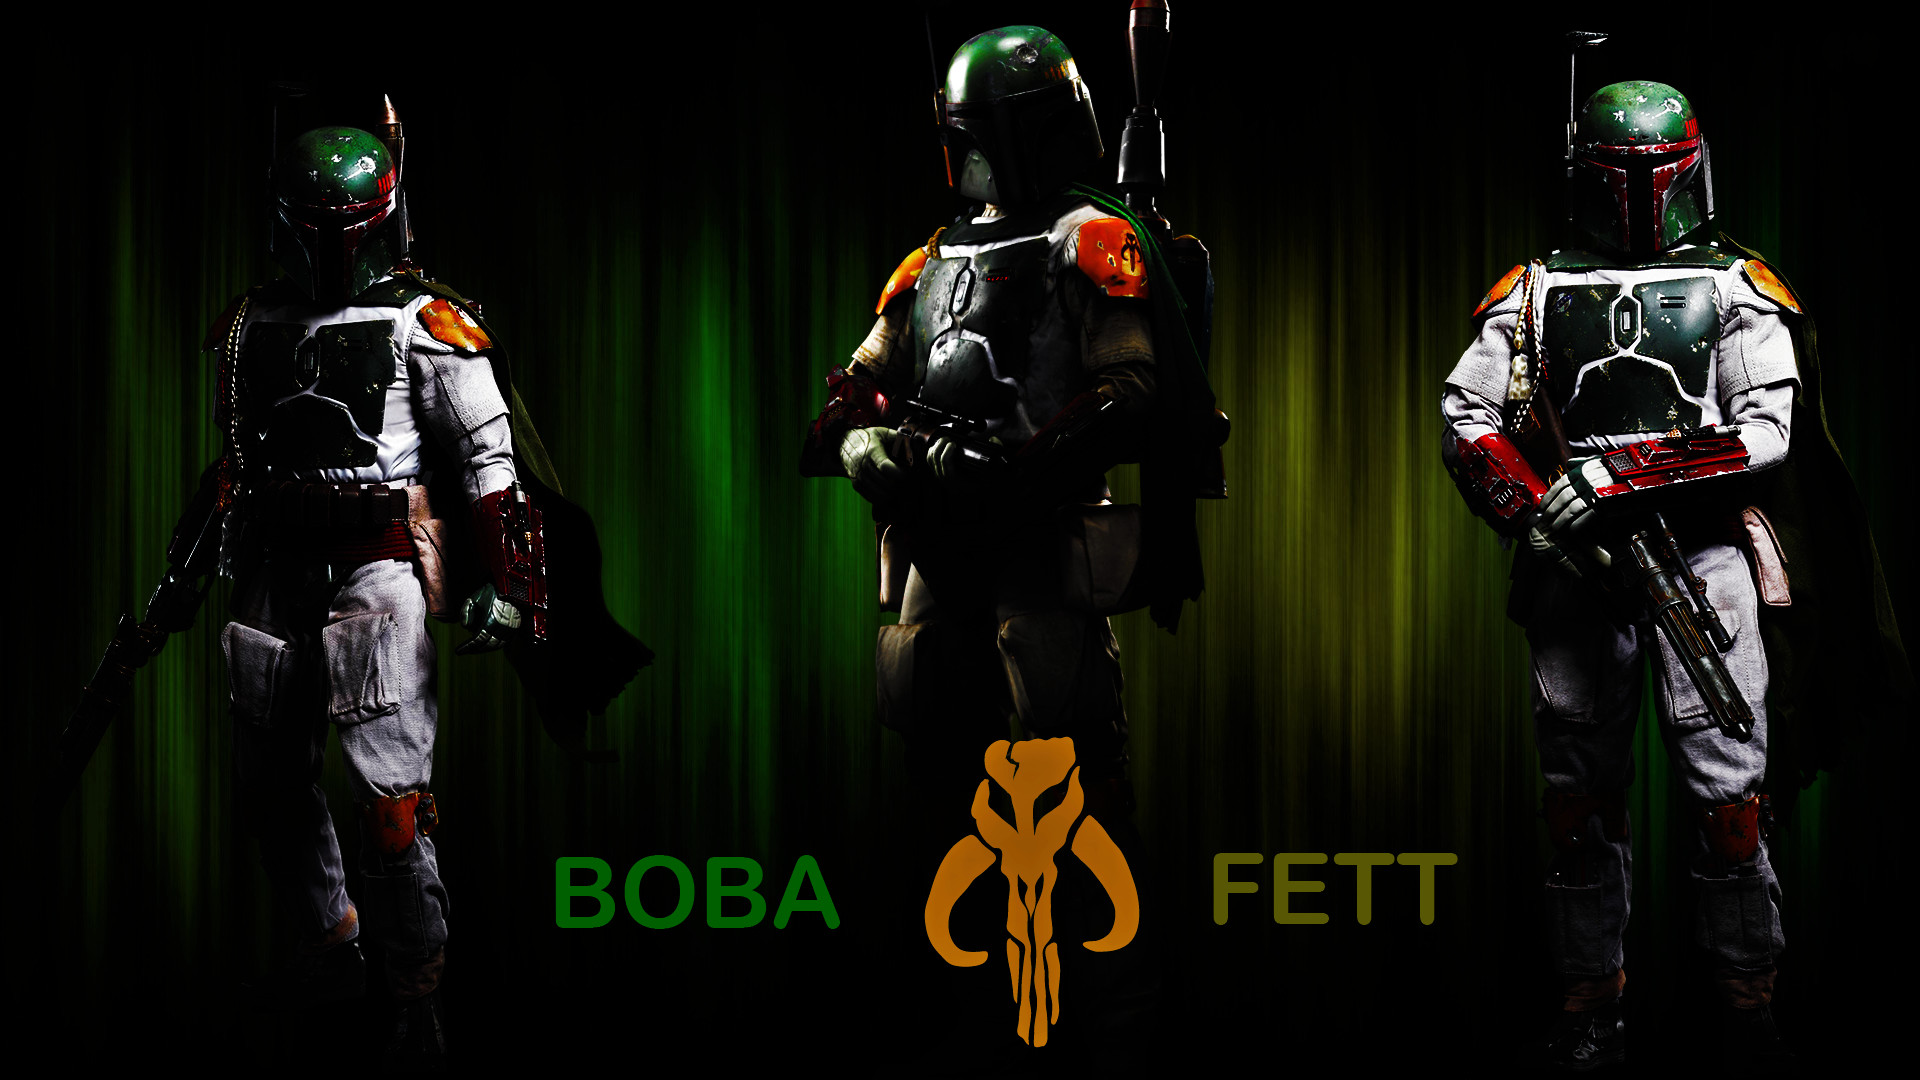 Star Wars Boba Fett Wallpaper Wallpapertag